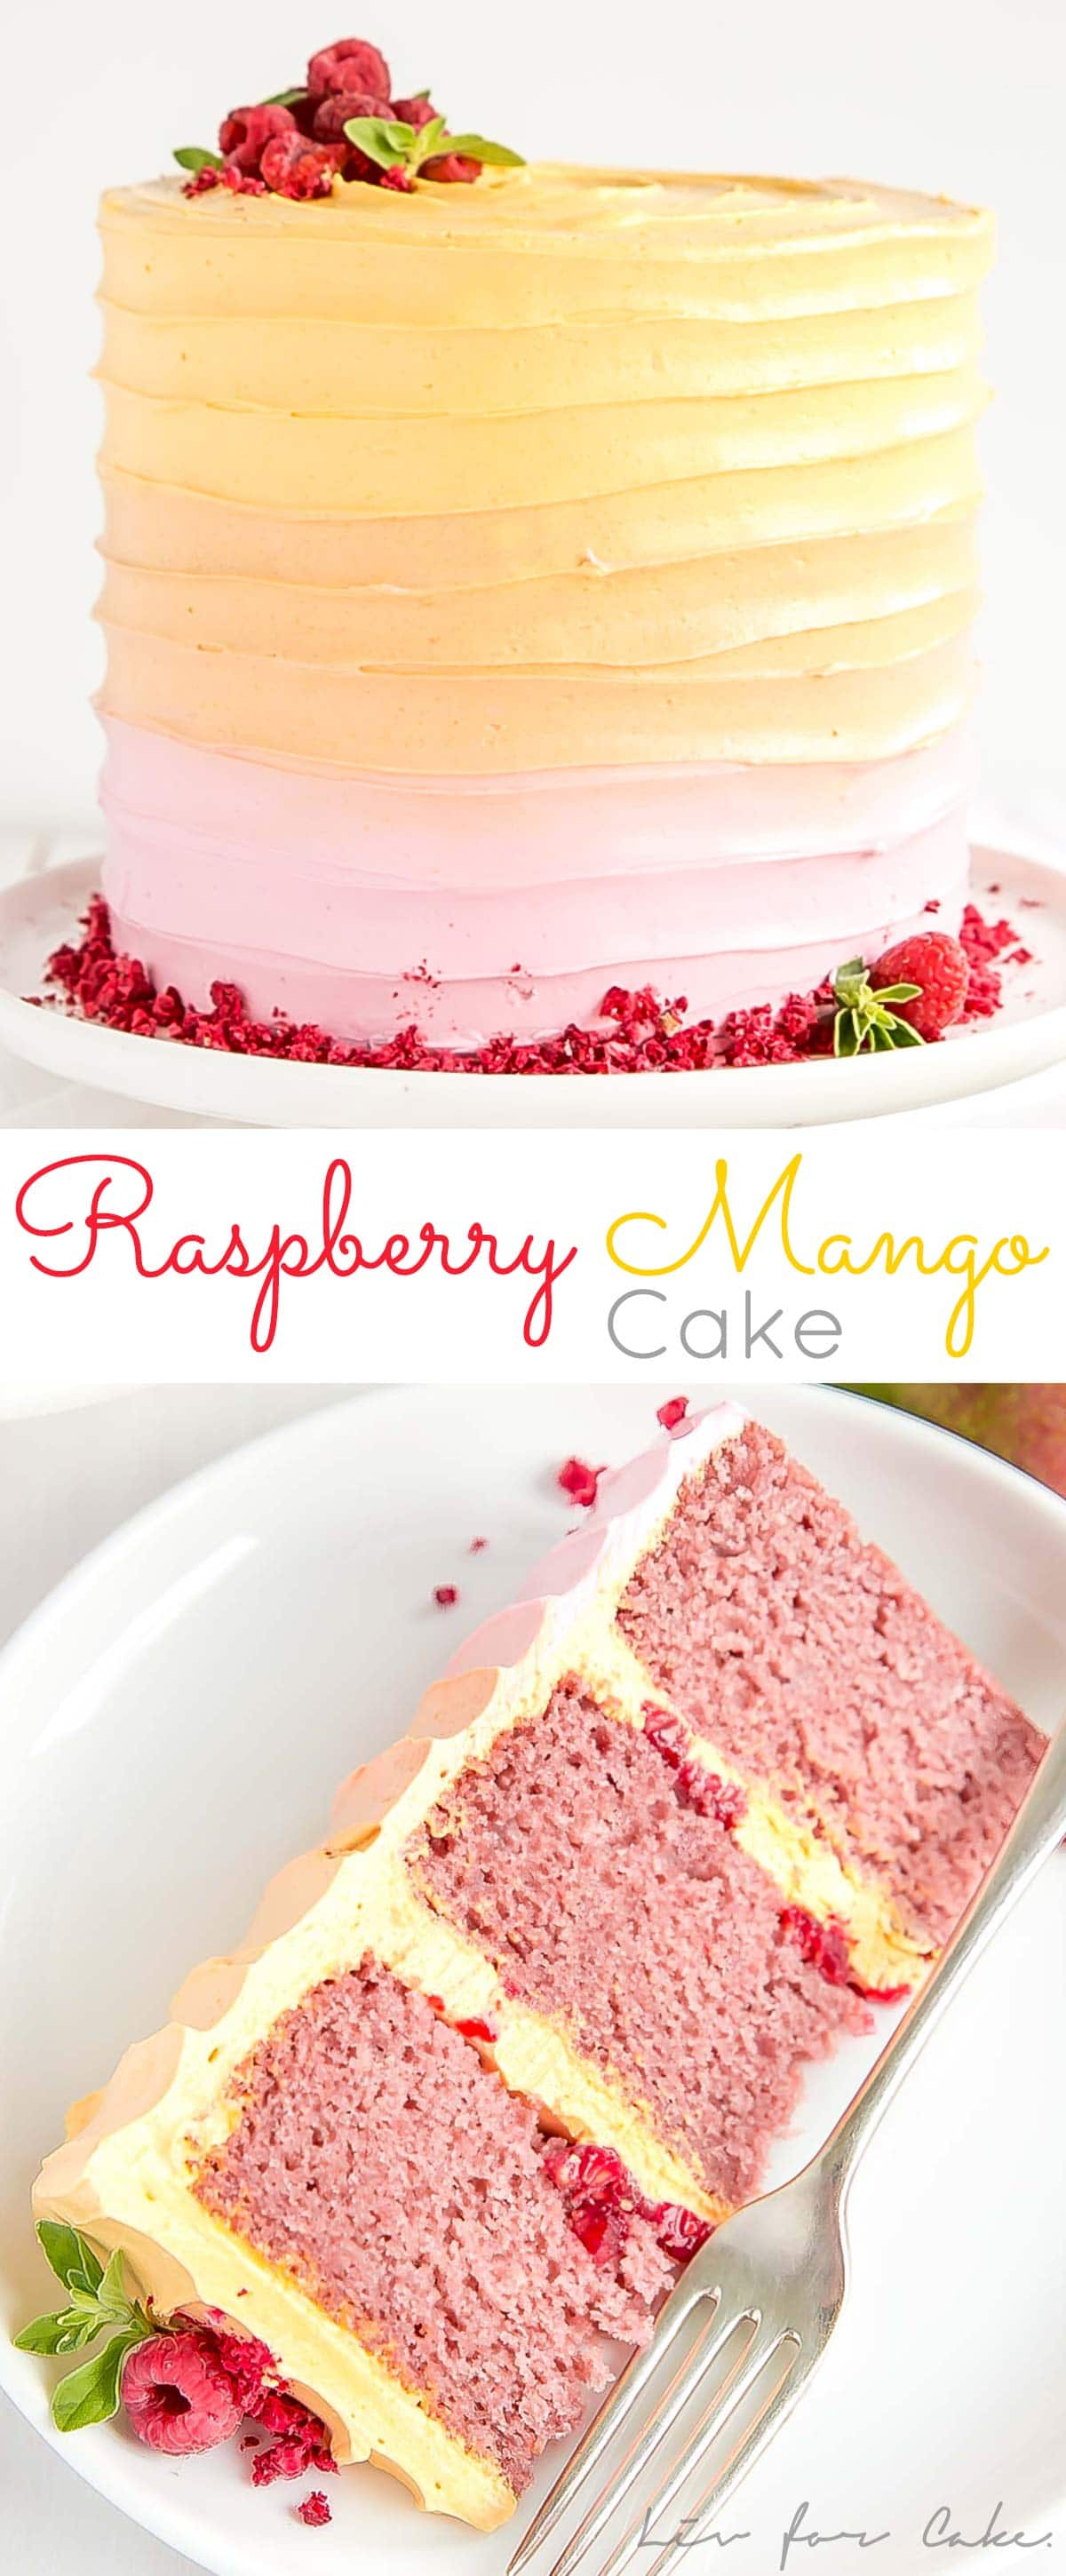 This Raspberry Mango Cake is the perfect way to celebrate the summer months!